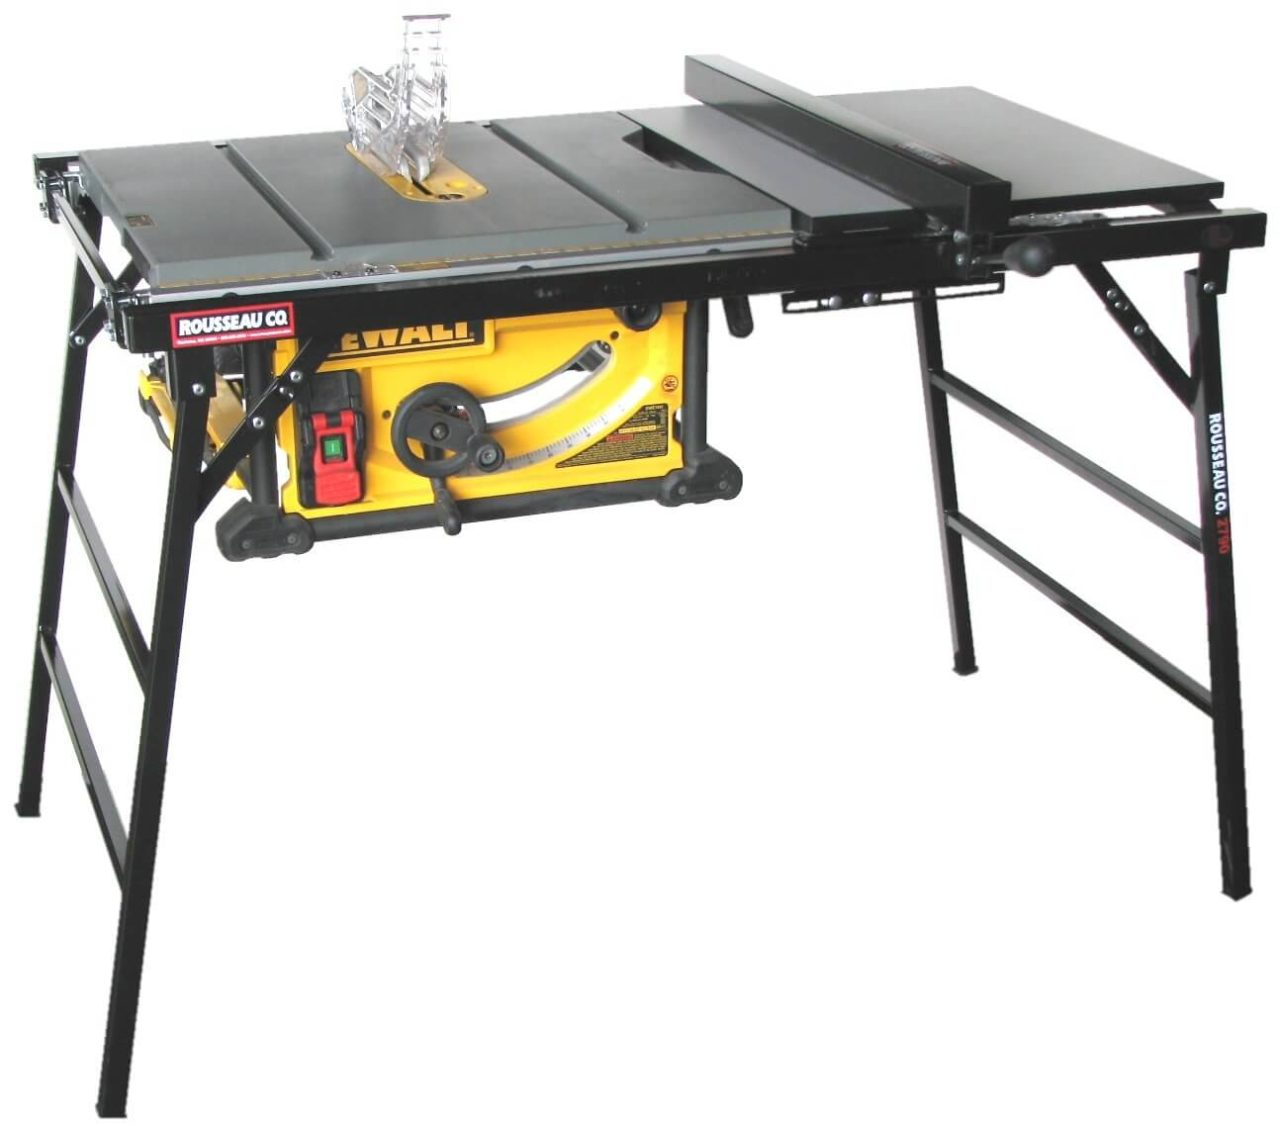 The Rousseau 2790 Table Saw Stand - Best for Heavy Duty Table Saws